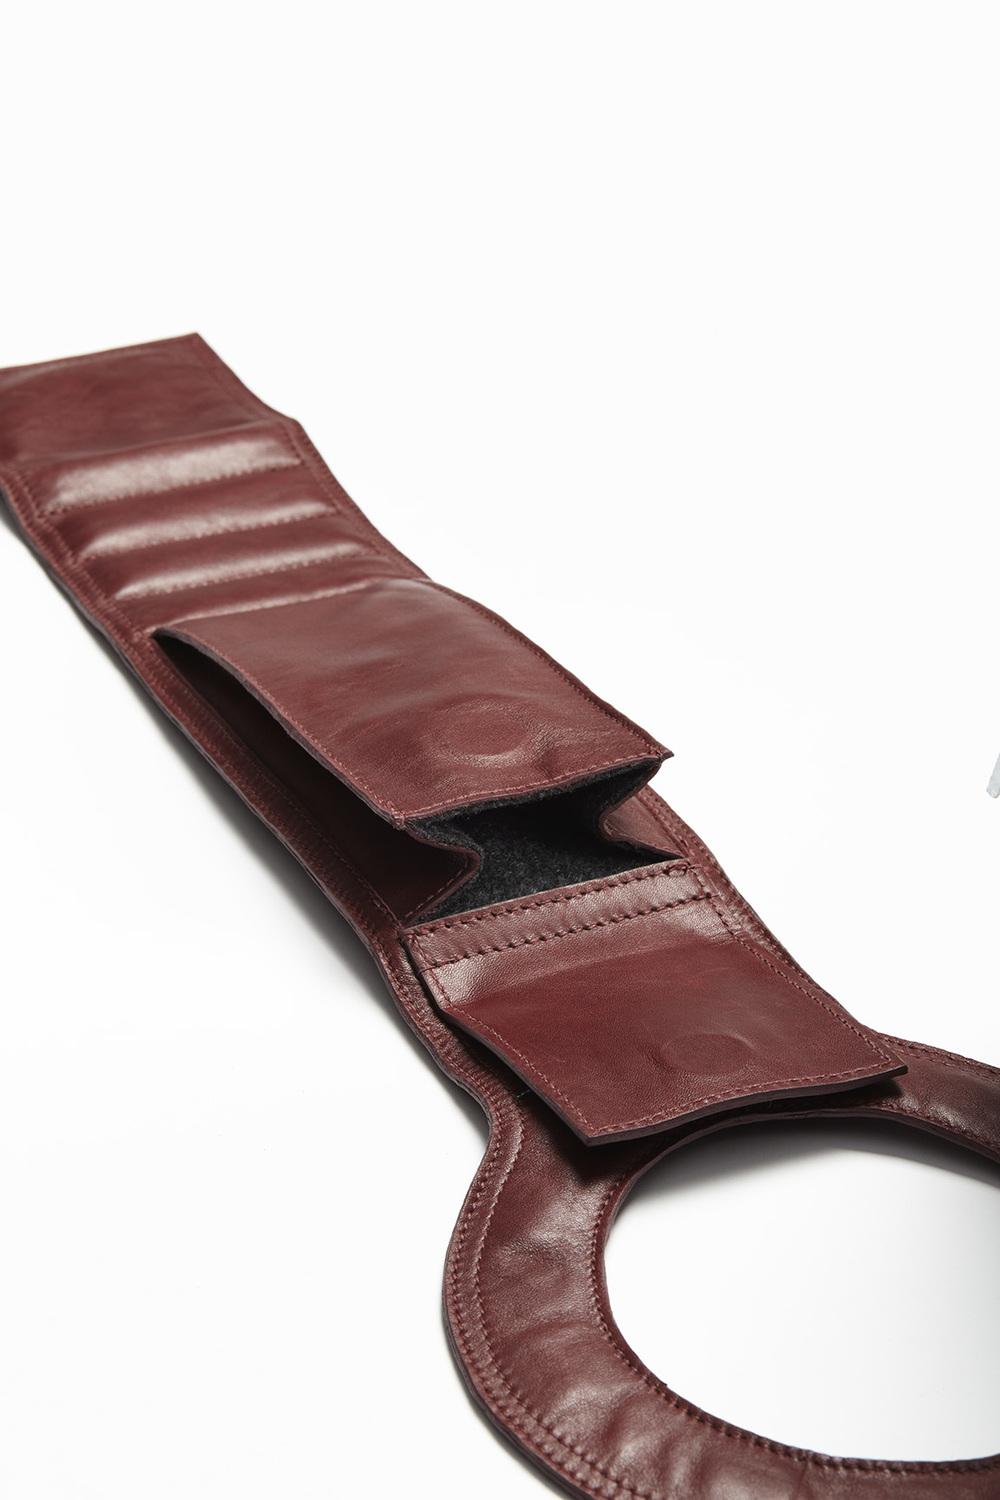 LEATHER_DV_TankStrap_201512_021_CardinalMotors_0431.jpg